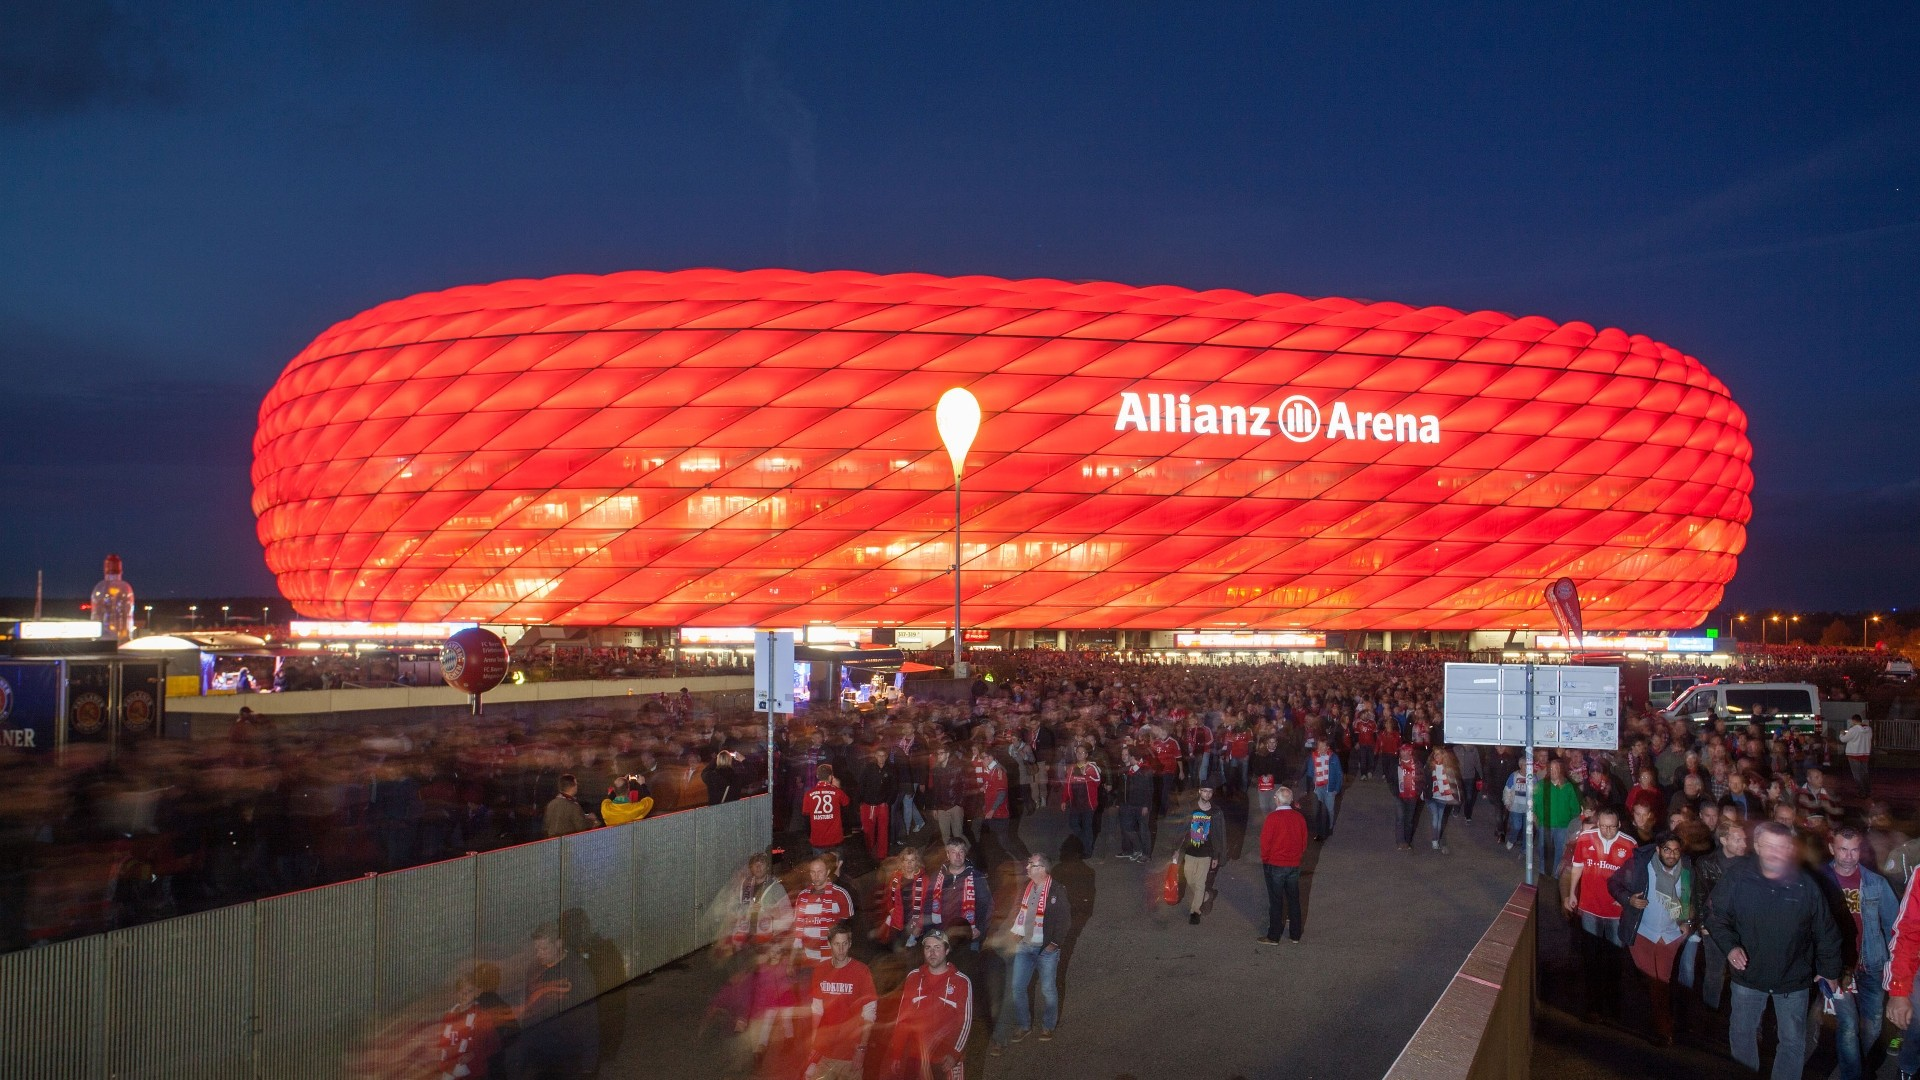 Iphone 6 Plus Hd Wallpapers 1080p Allianz Arena Wallpapers 63 Images